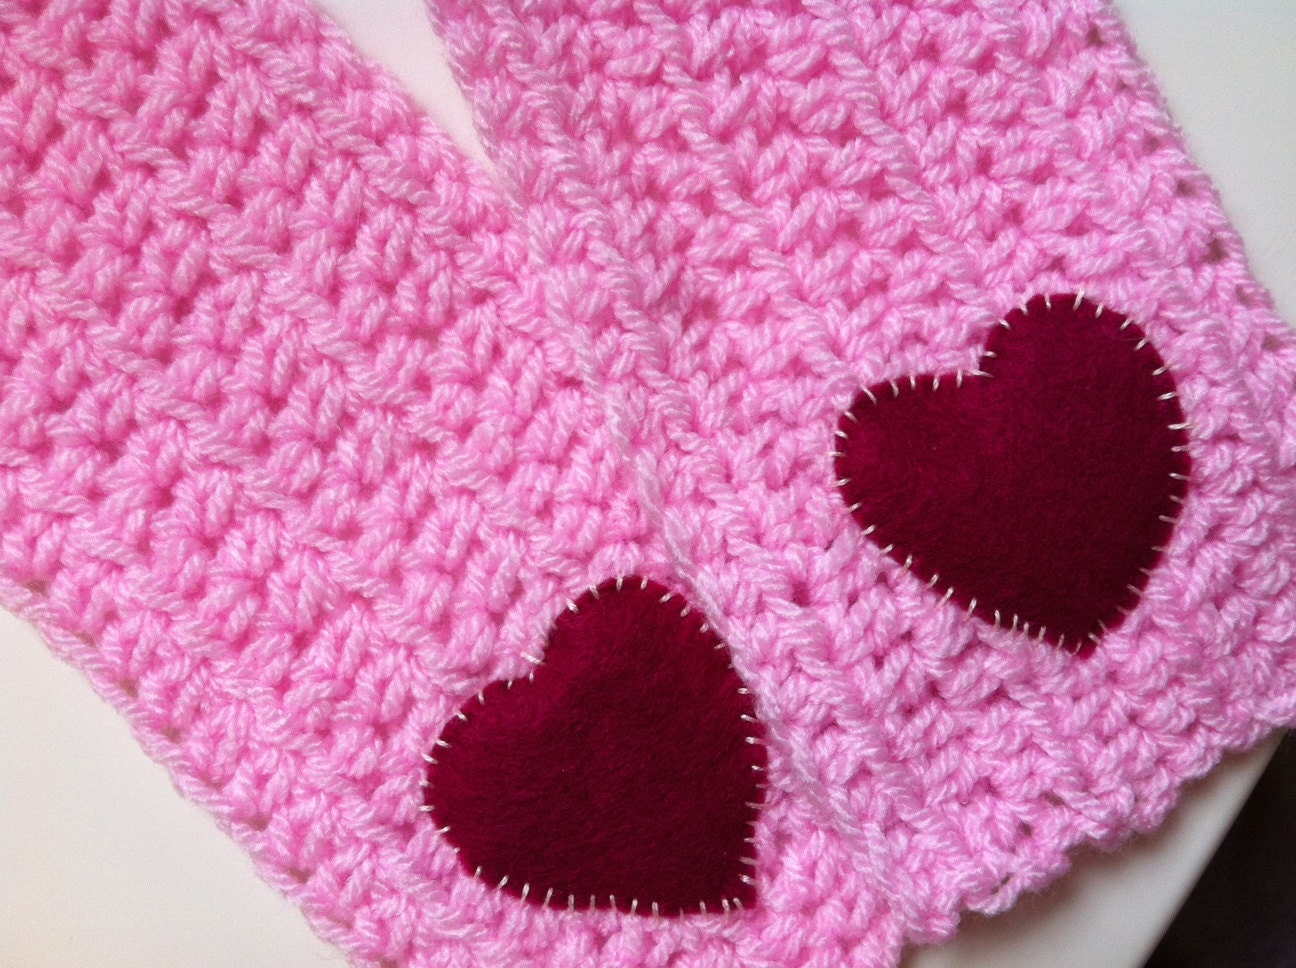 Crochet Scarf Pink Girls Heart Scarf by Kookooed on Etsy Crochet Childrens Scarf